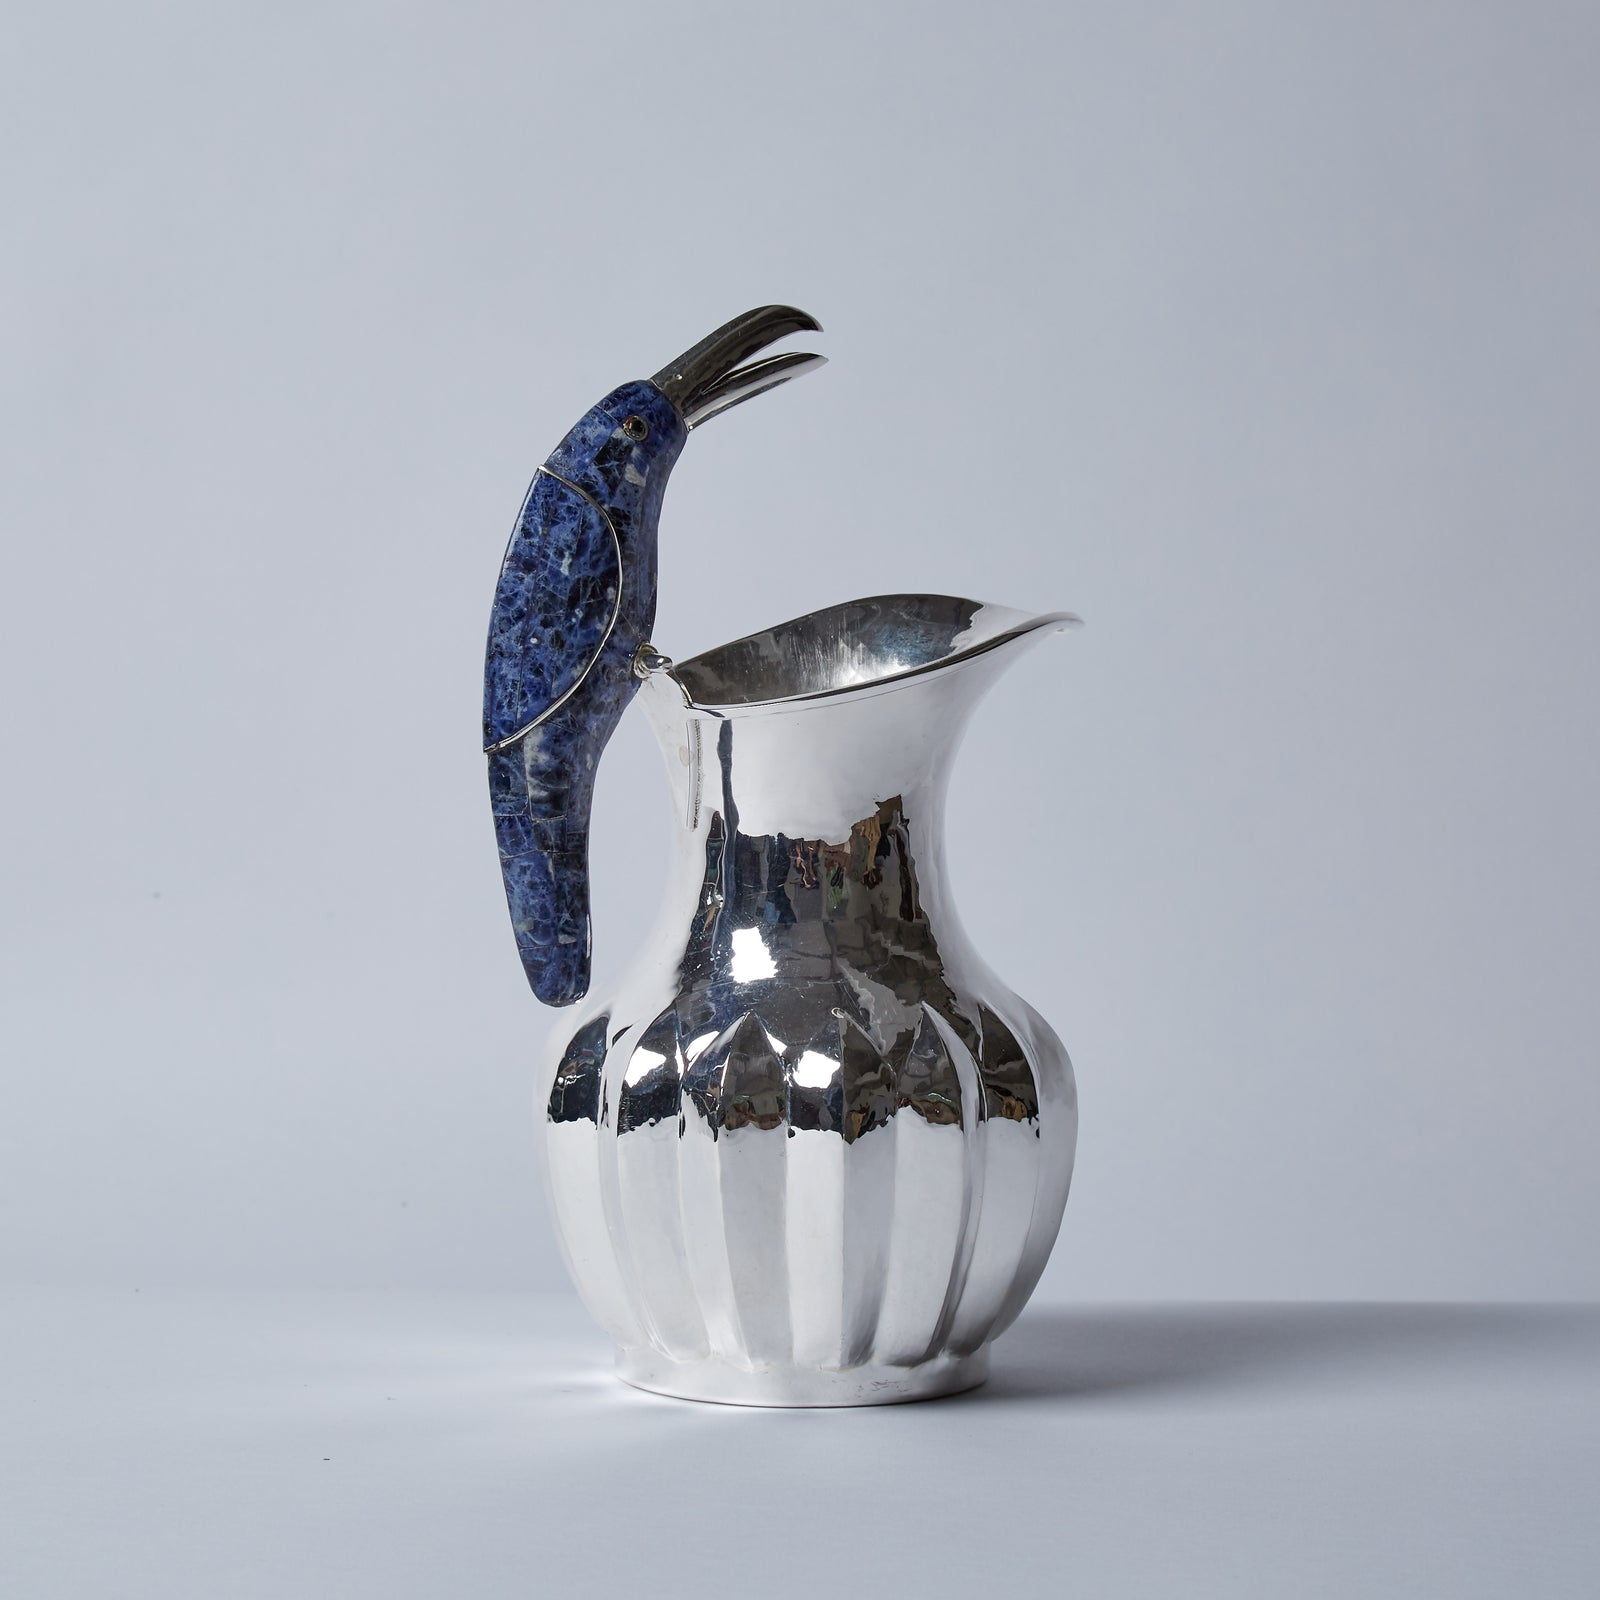 A sprightly and curious bird, this blue lapis toucan is the perfect finishing touch to the uniquely shaped silver jug.